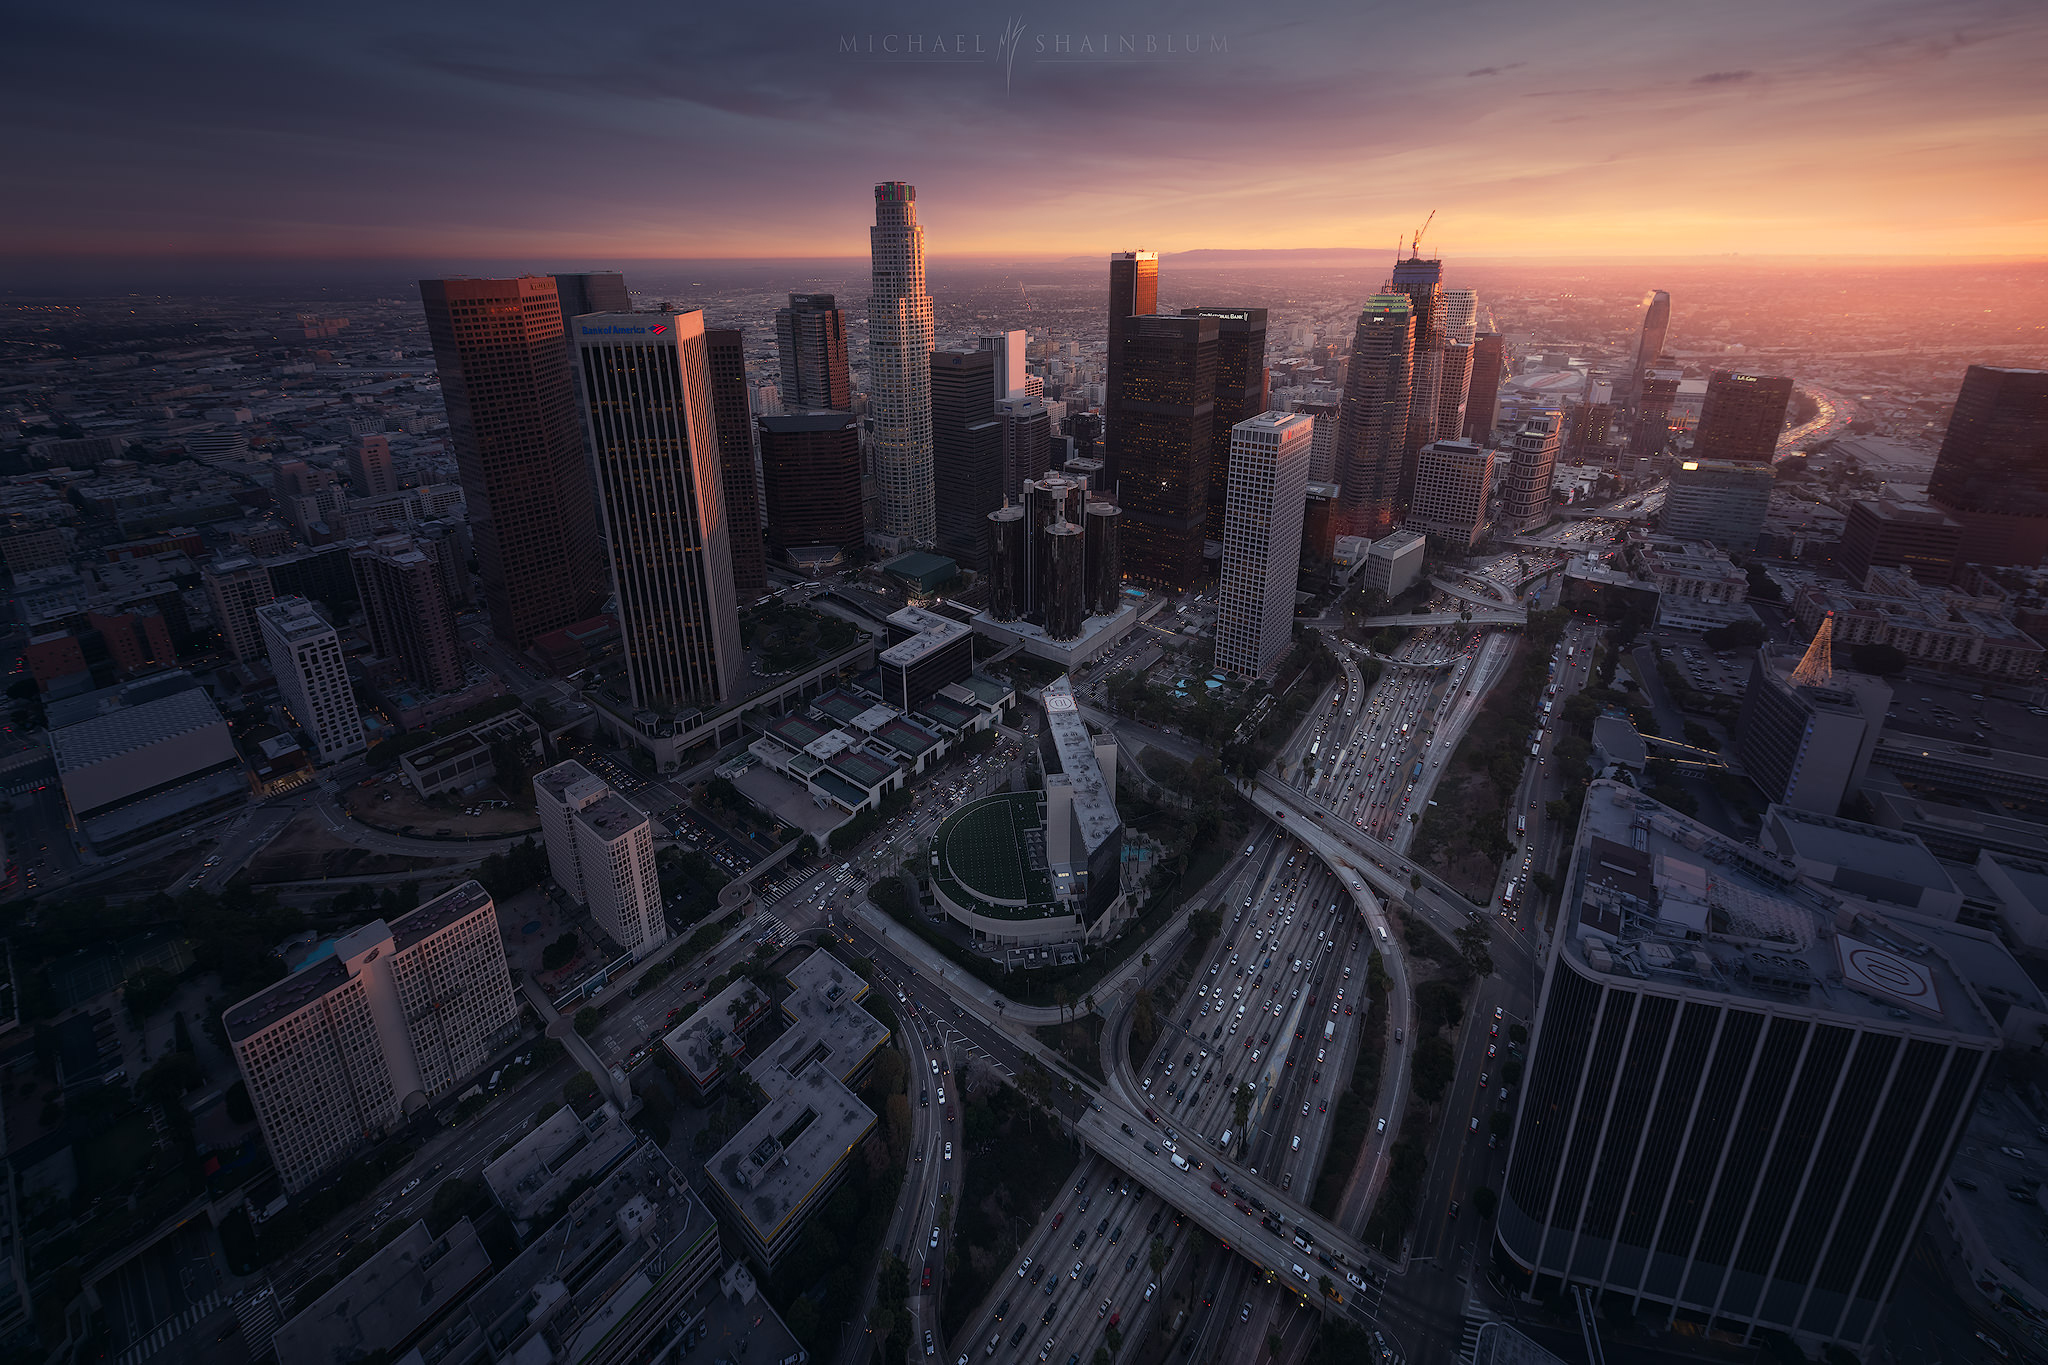 Some new Landscape Photography and Cityscape Images! - Michael ...